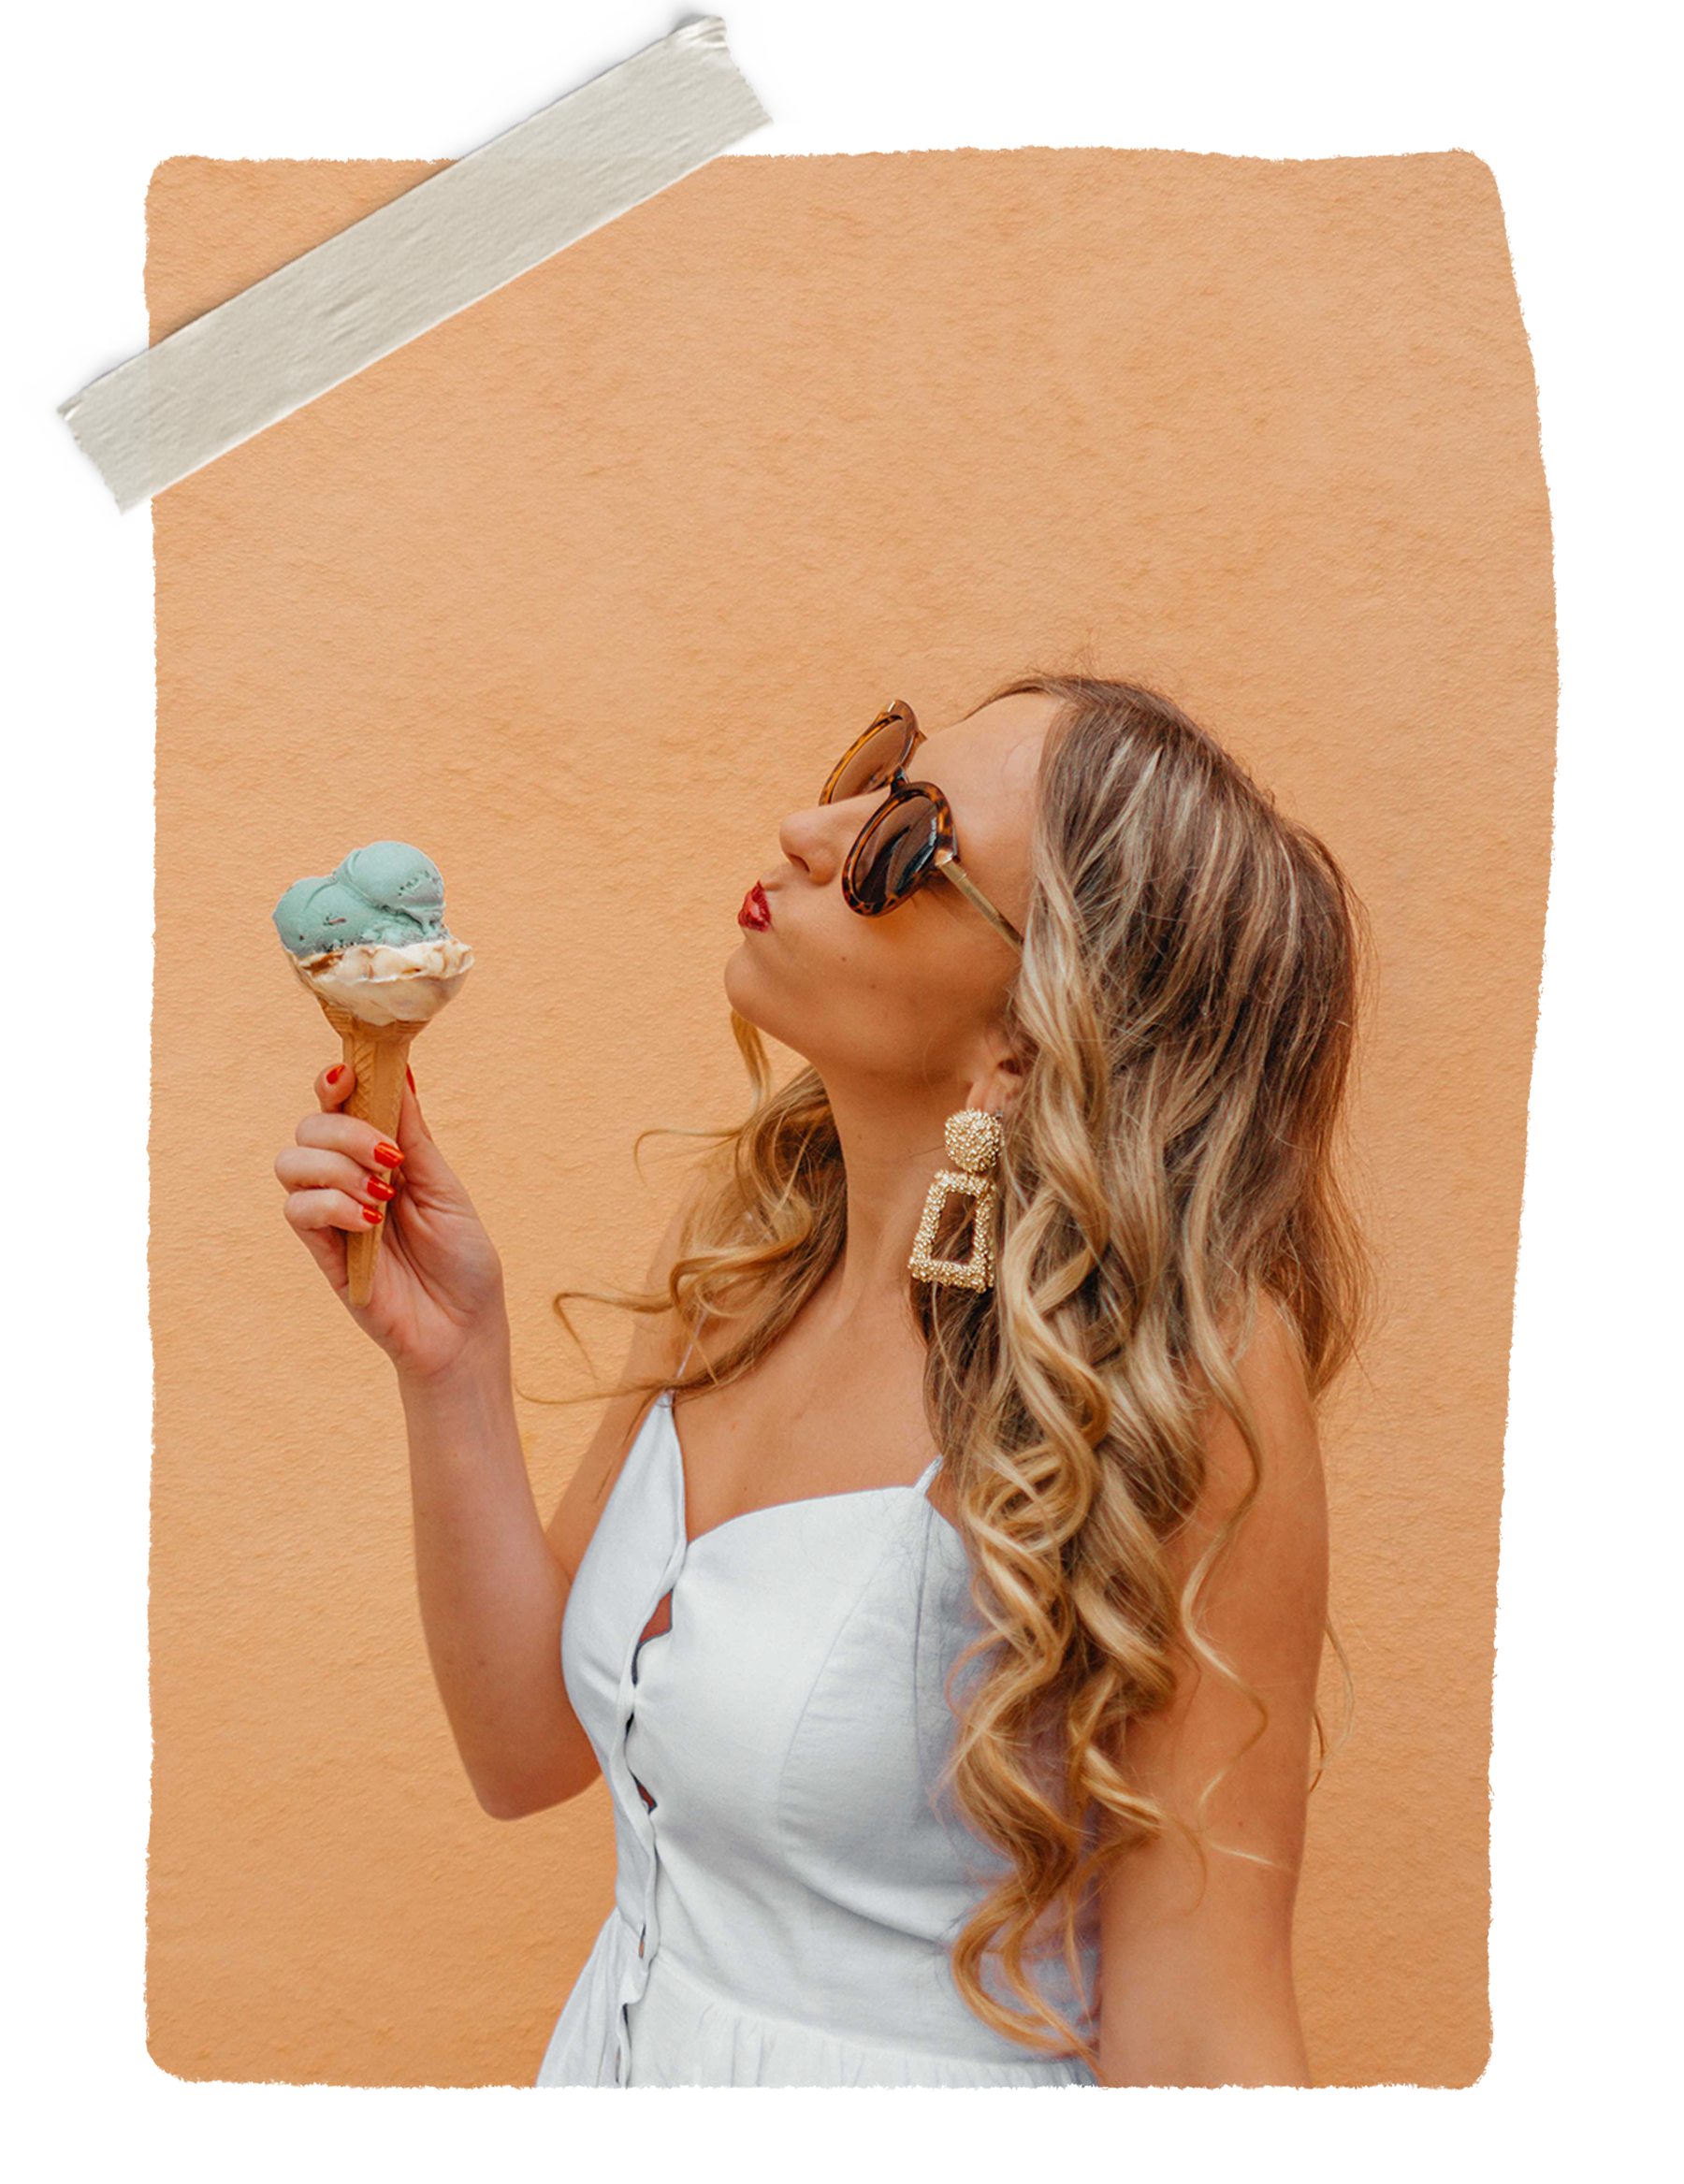 fallon-travels-ice-cream-photo-influencer-blogger.png